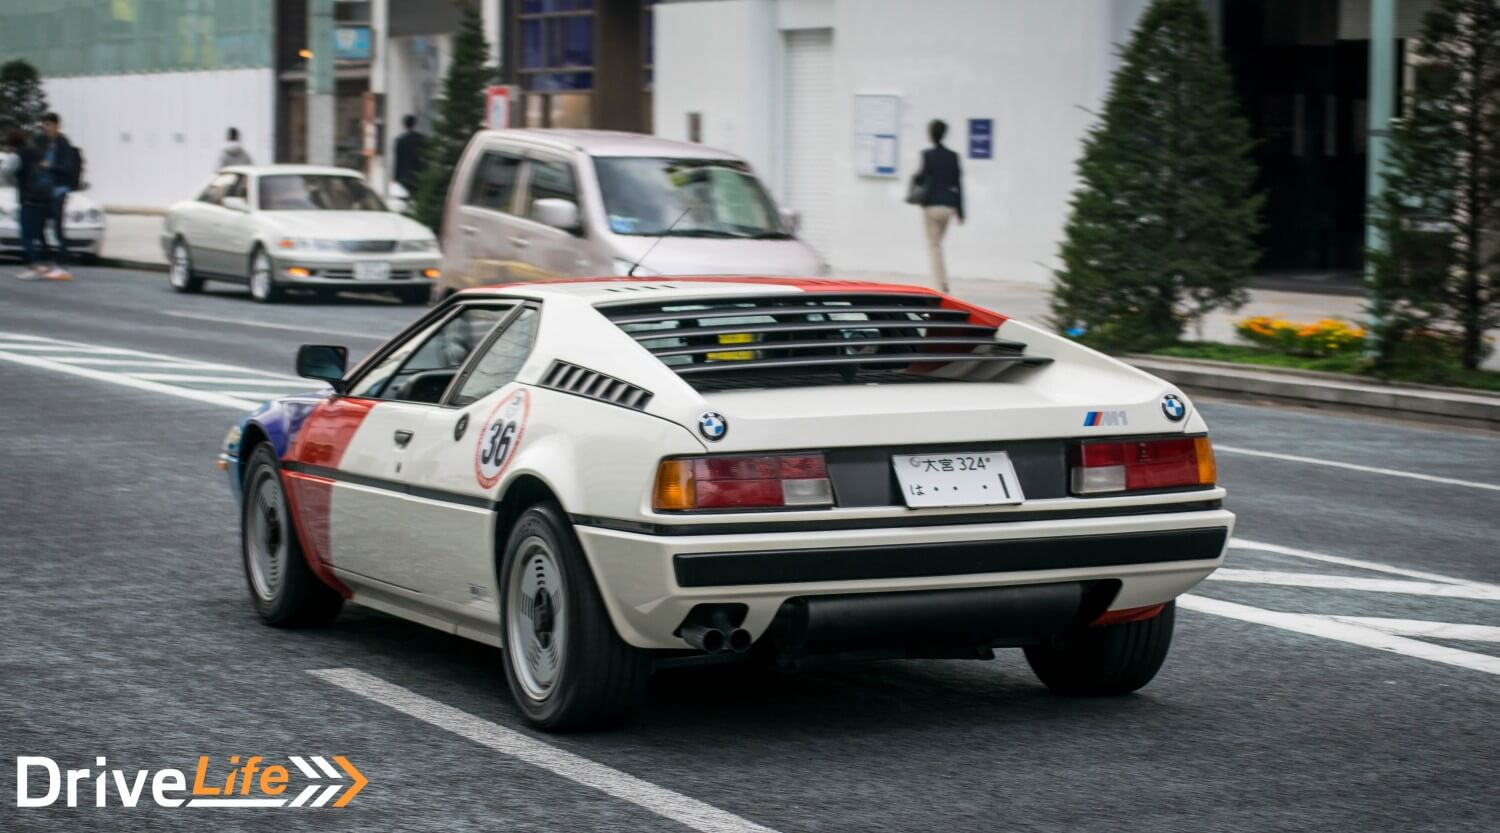 drivelife-nz-tokyo-car-spotting-ginza-bmw-m1